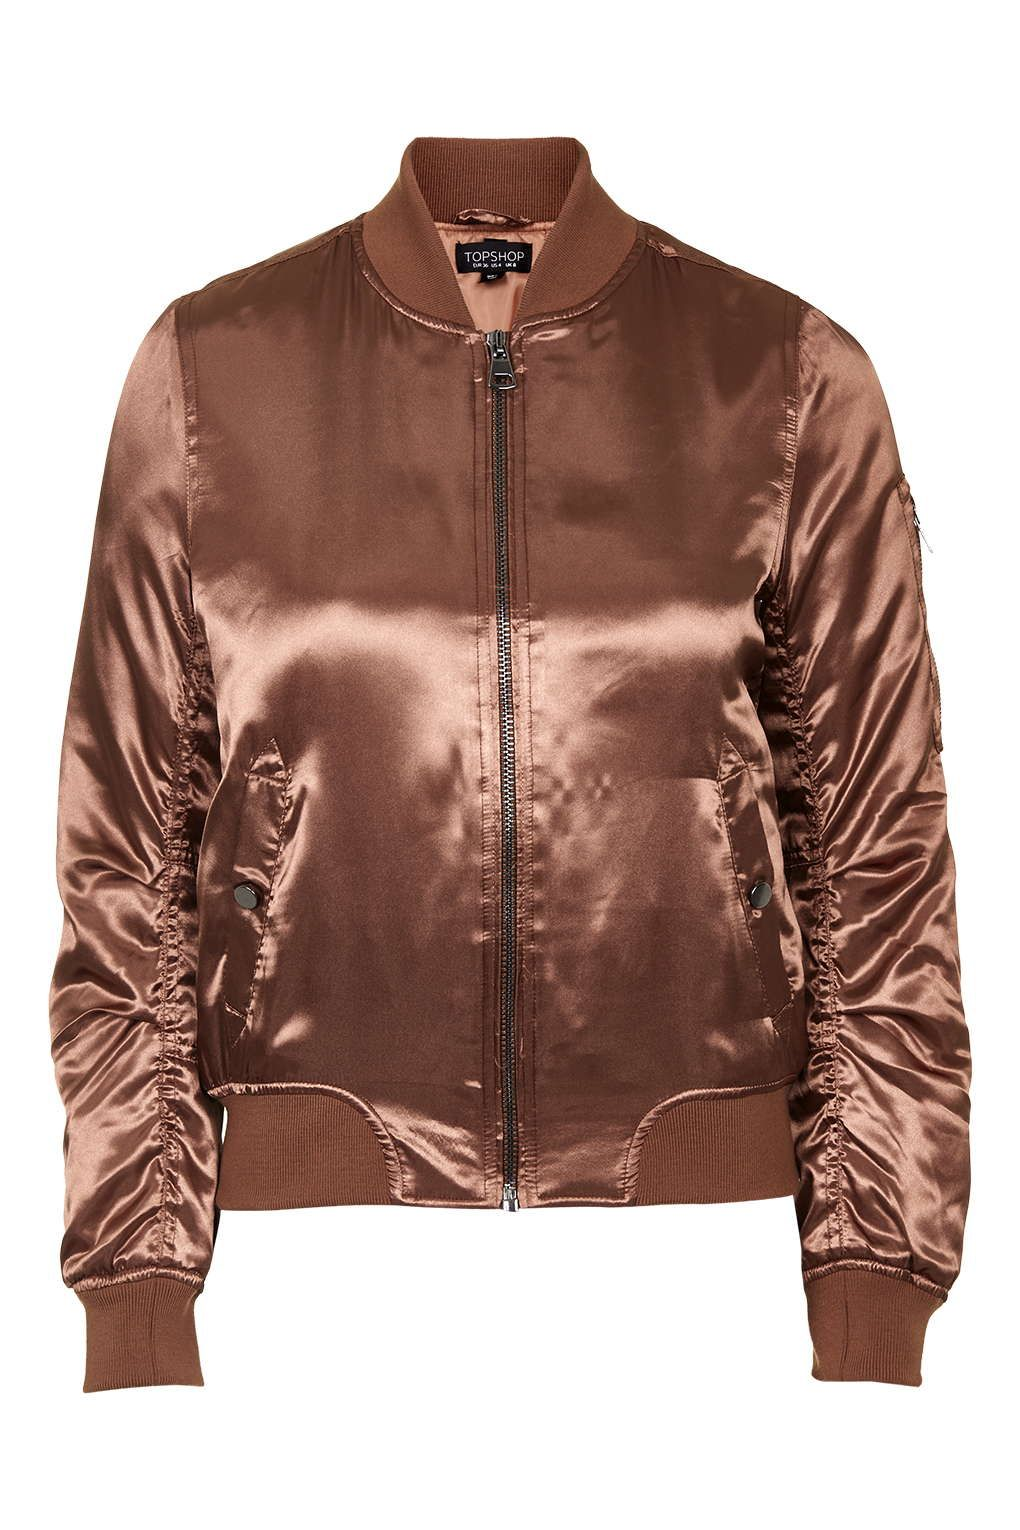 Shiny Rust MA1 Bomber in 2020 | Bomber jacket, Brown ...